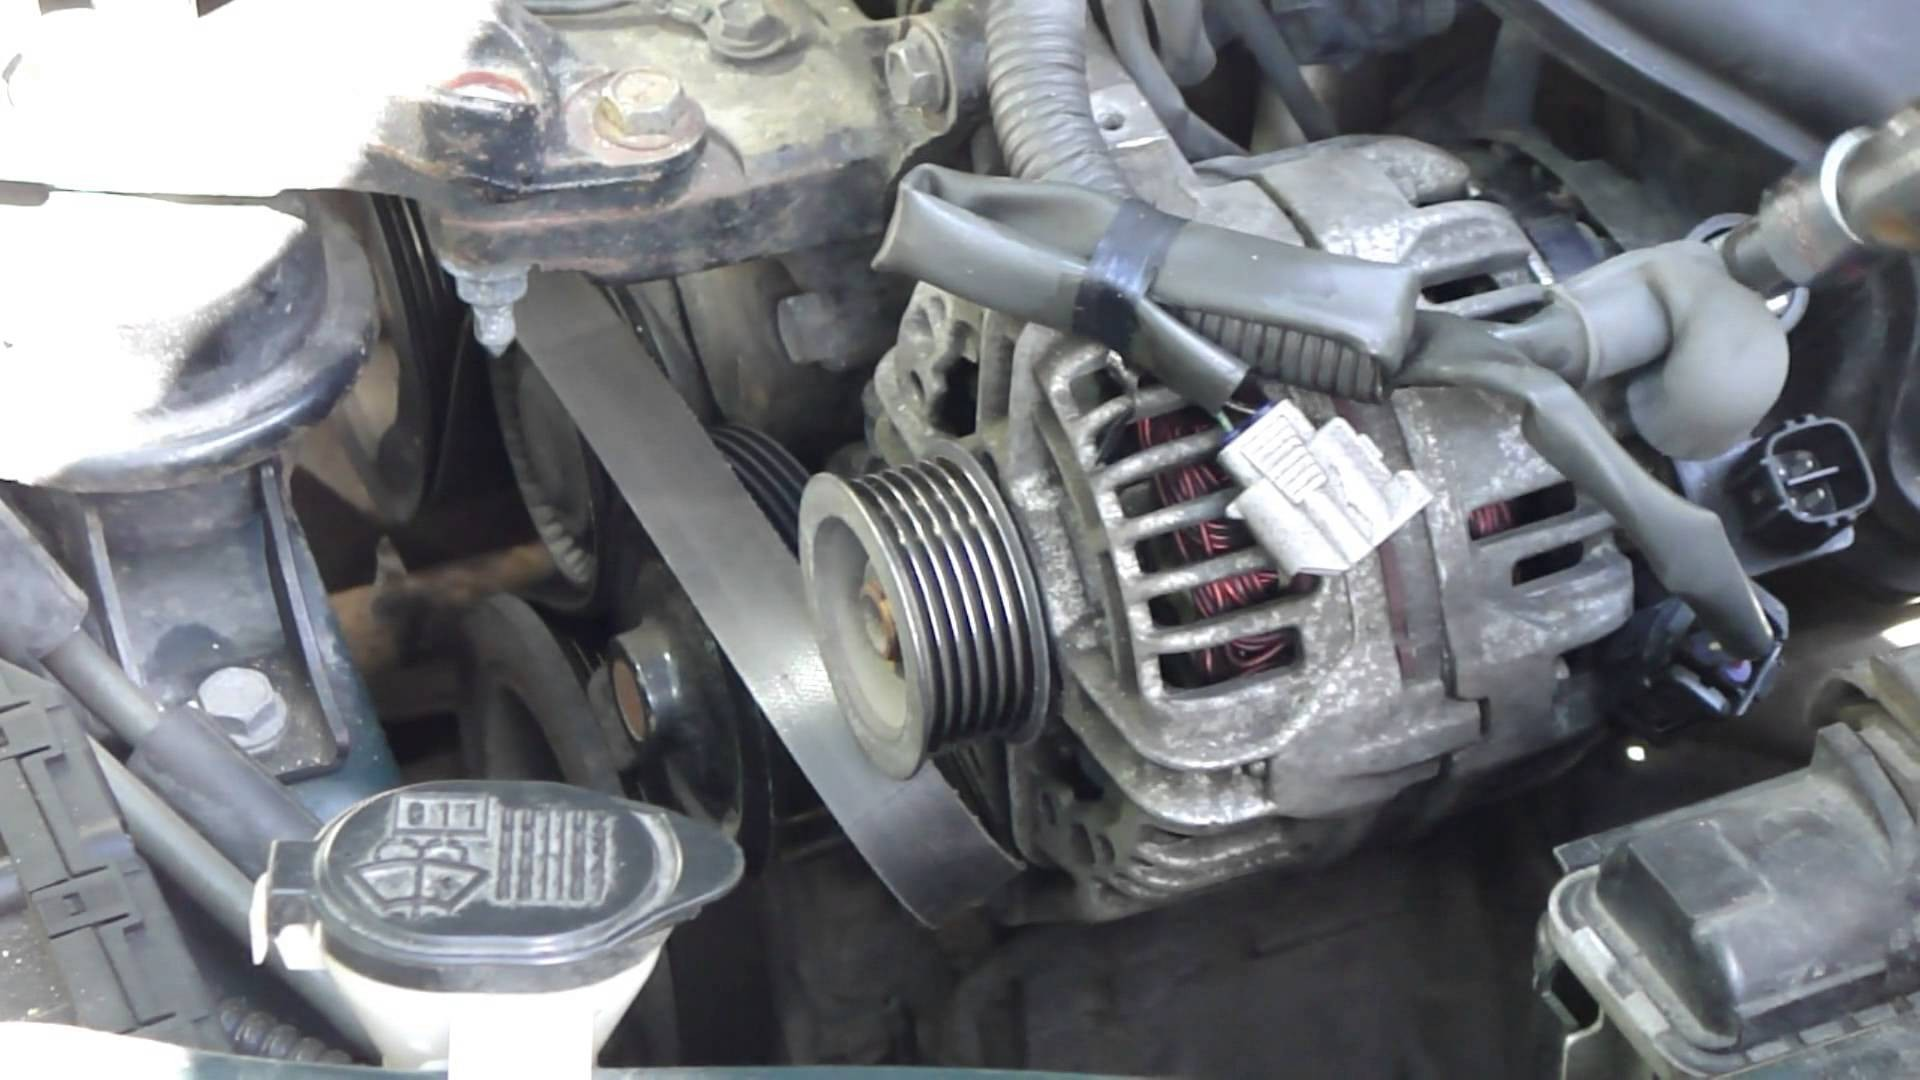 1990 Toyota Corolla Engine Diagram Engines Allengines 2009 How To Change Alternator Vvt I Years 2000